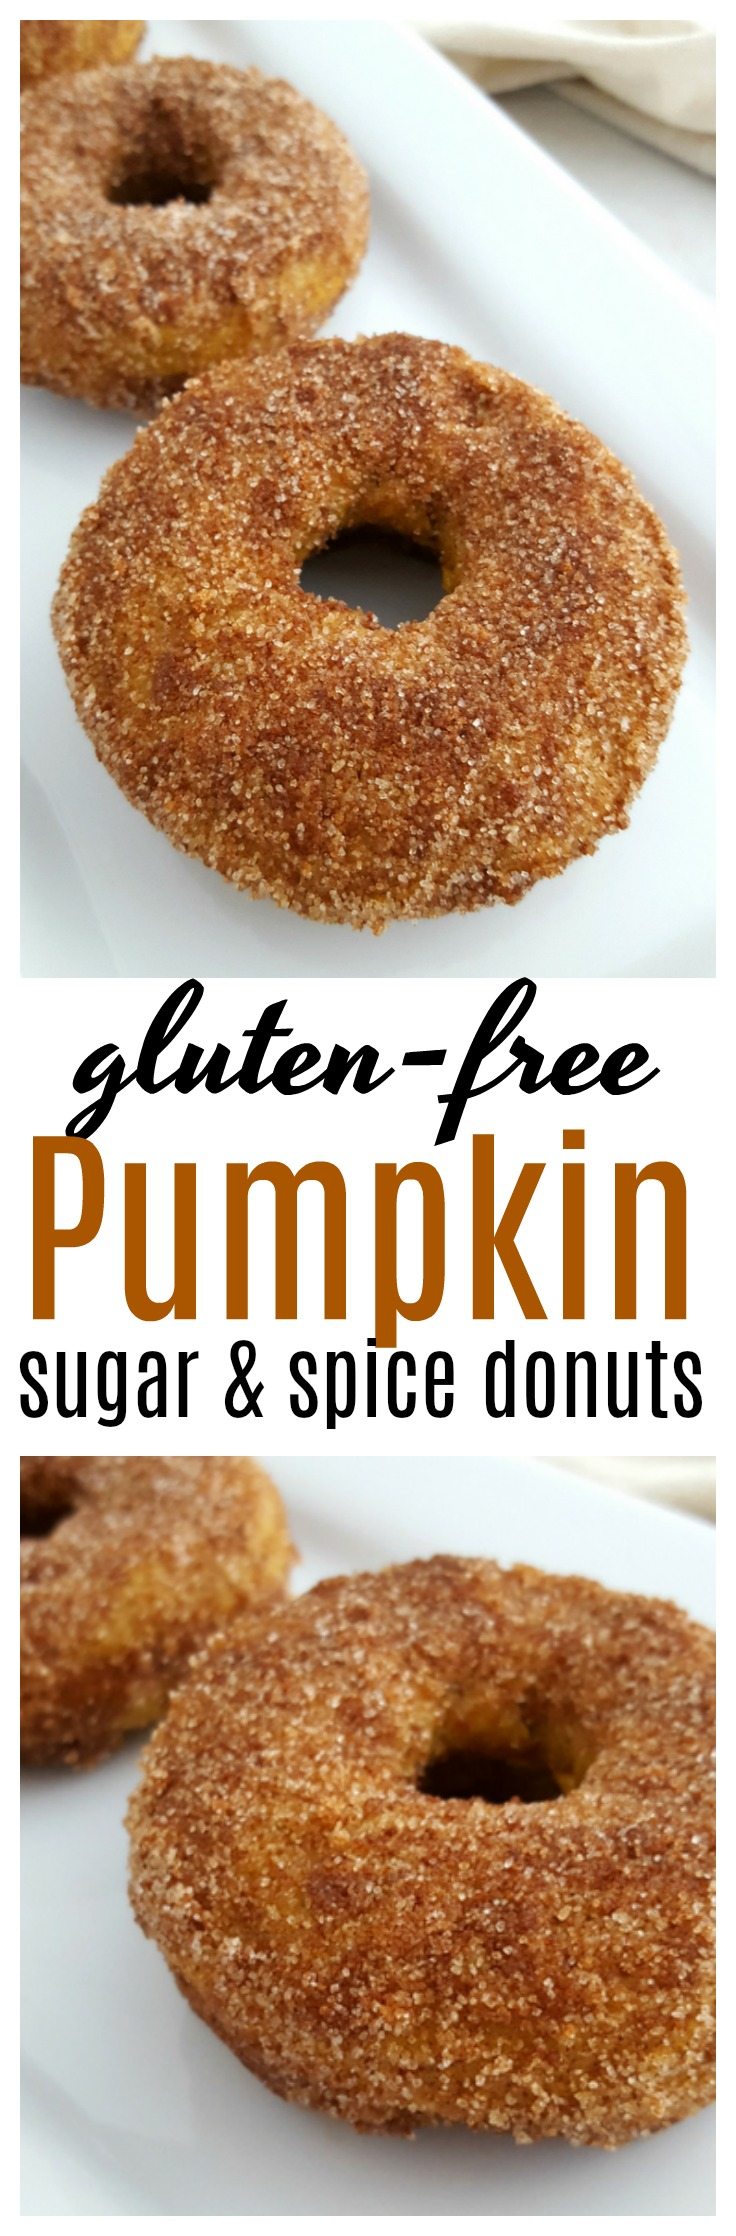 These Gluten-Free Pumpkin Sugar and Spice donuts are the perfect treat to enjoy this fall - and so easy to make at home!